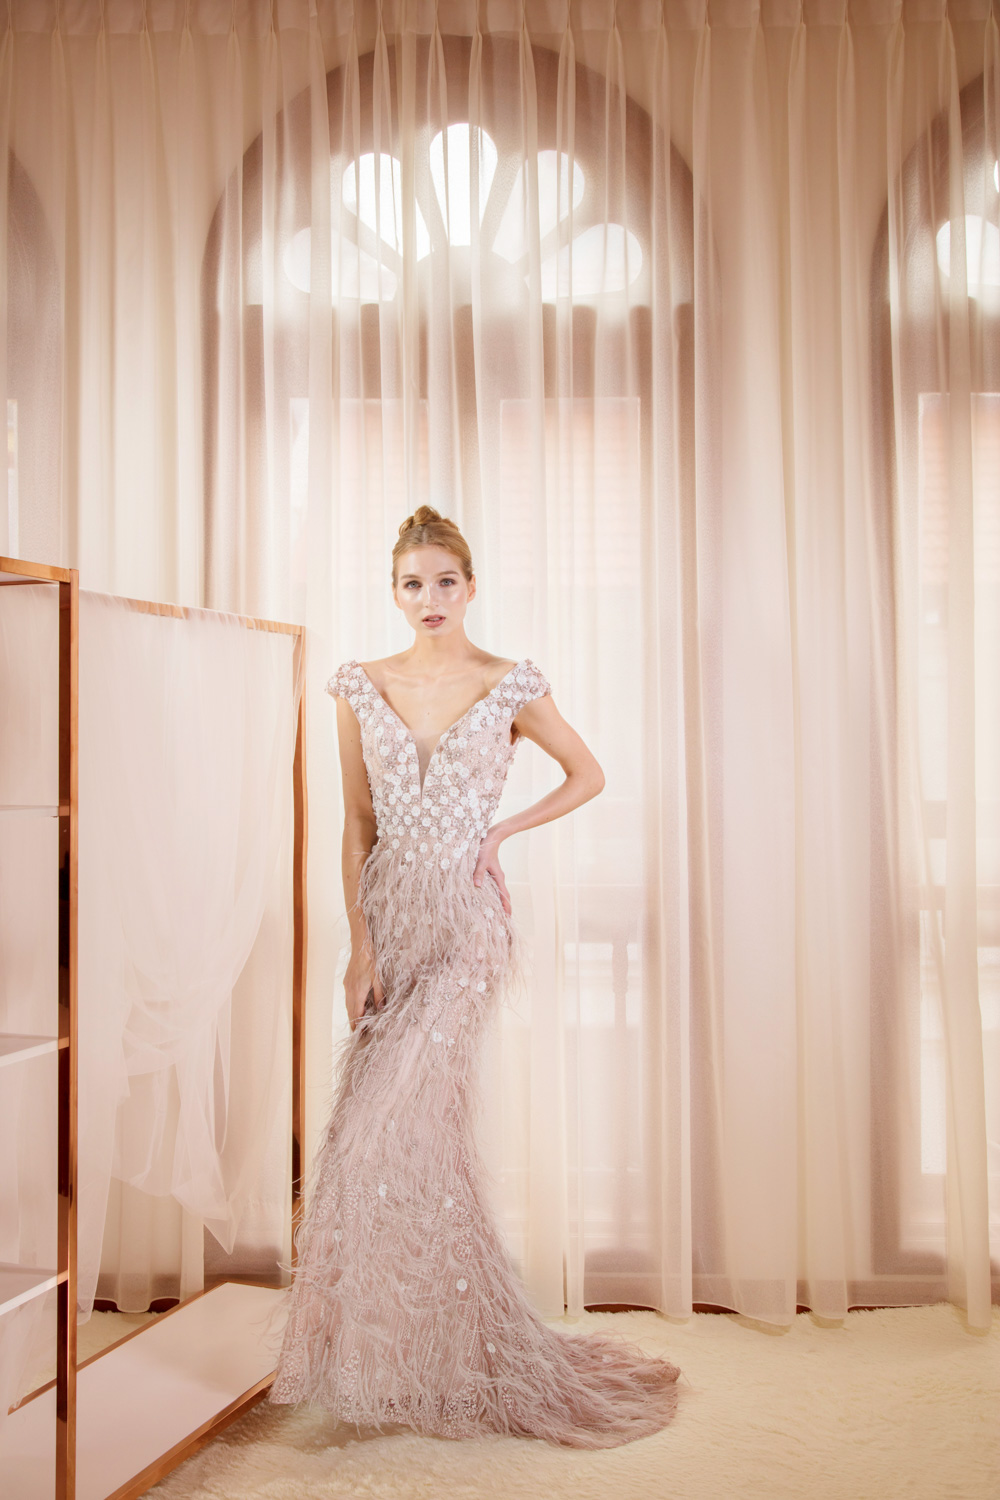 Evening gown with feather detail by CCM Wedding